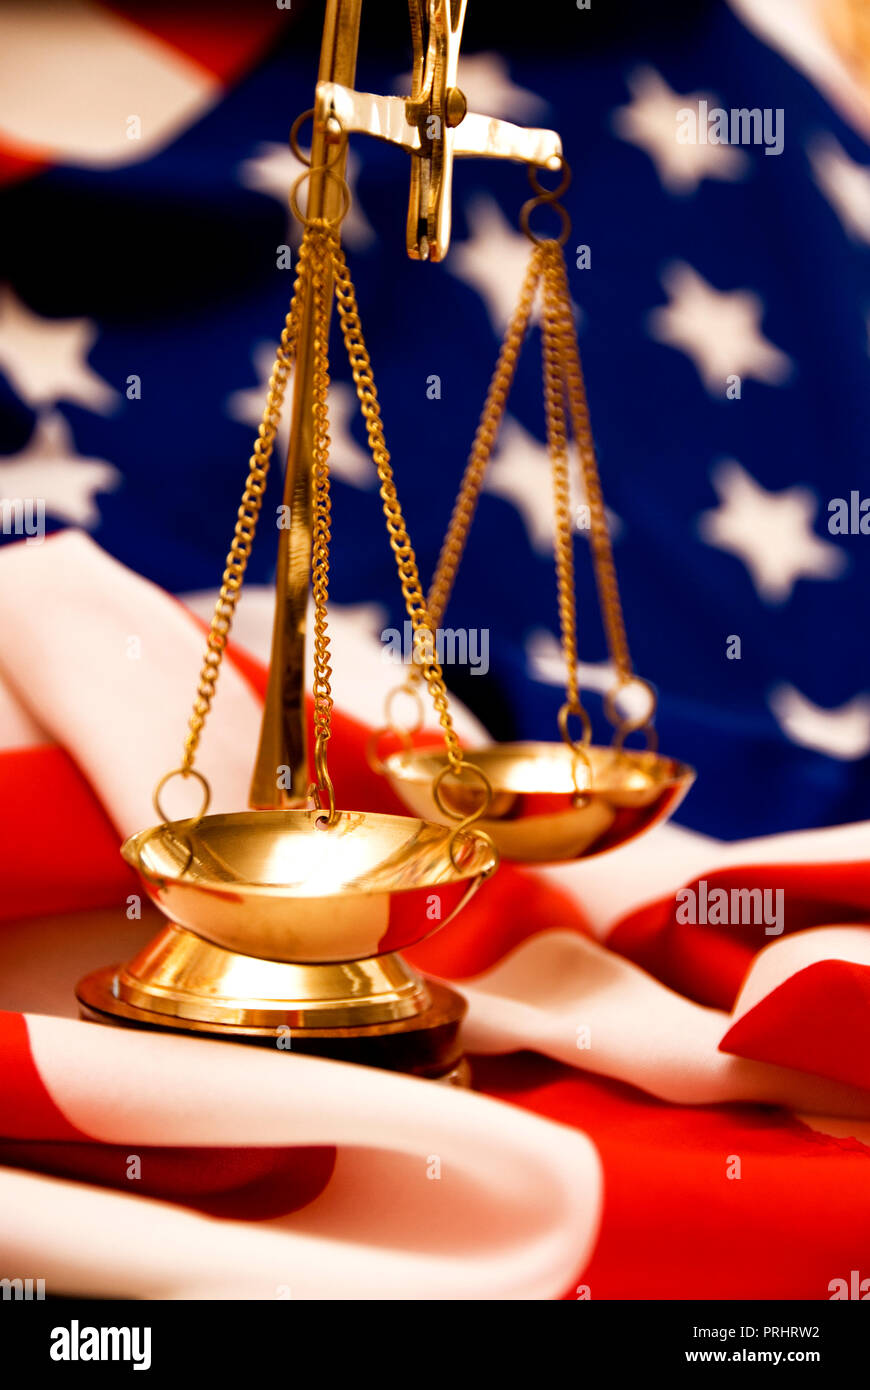 scales and USA flag concept for justice in United States of America - Stock Image